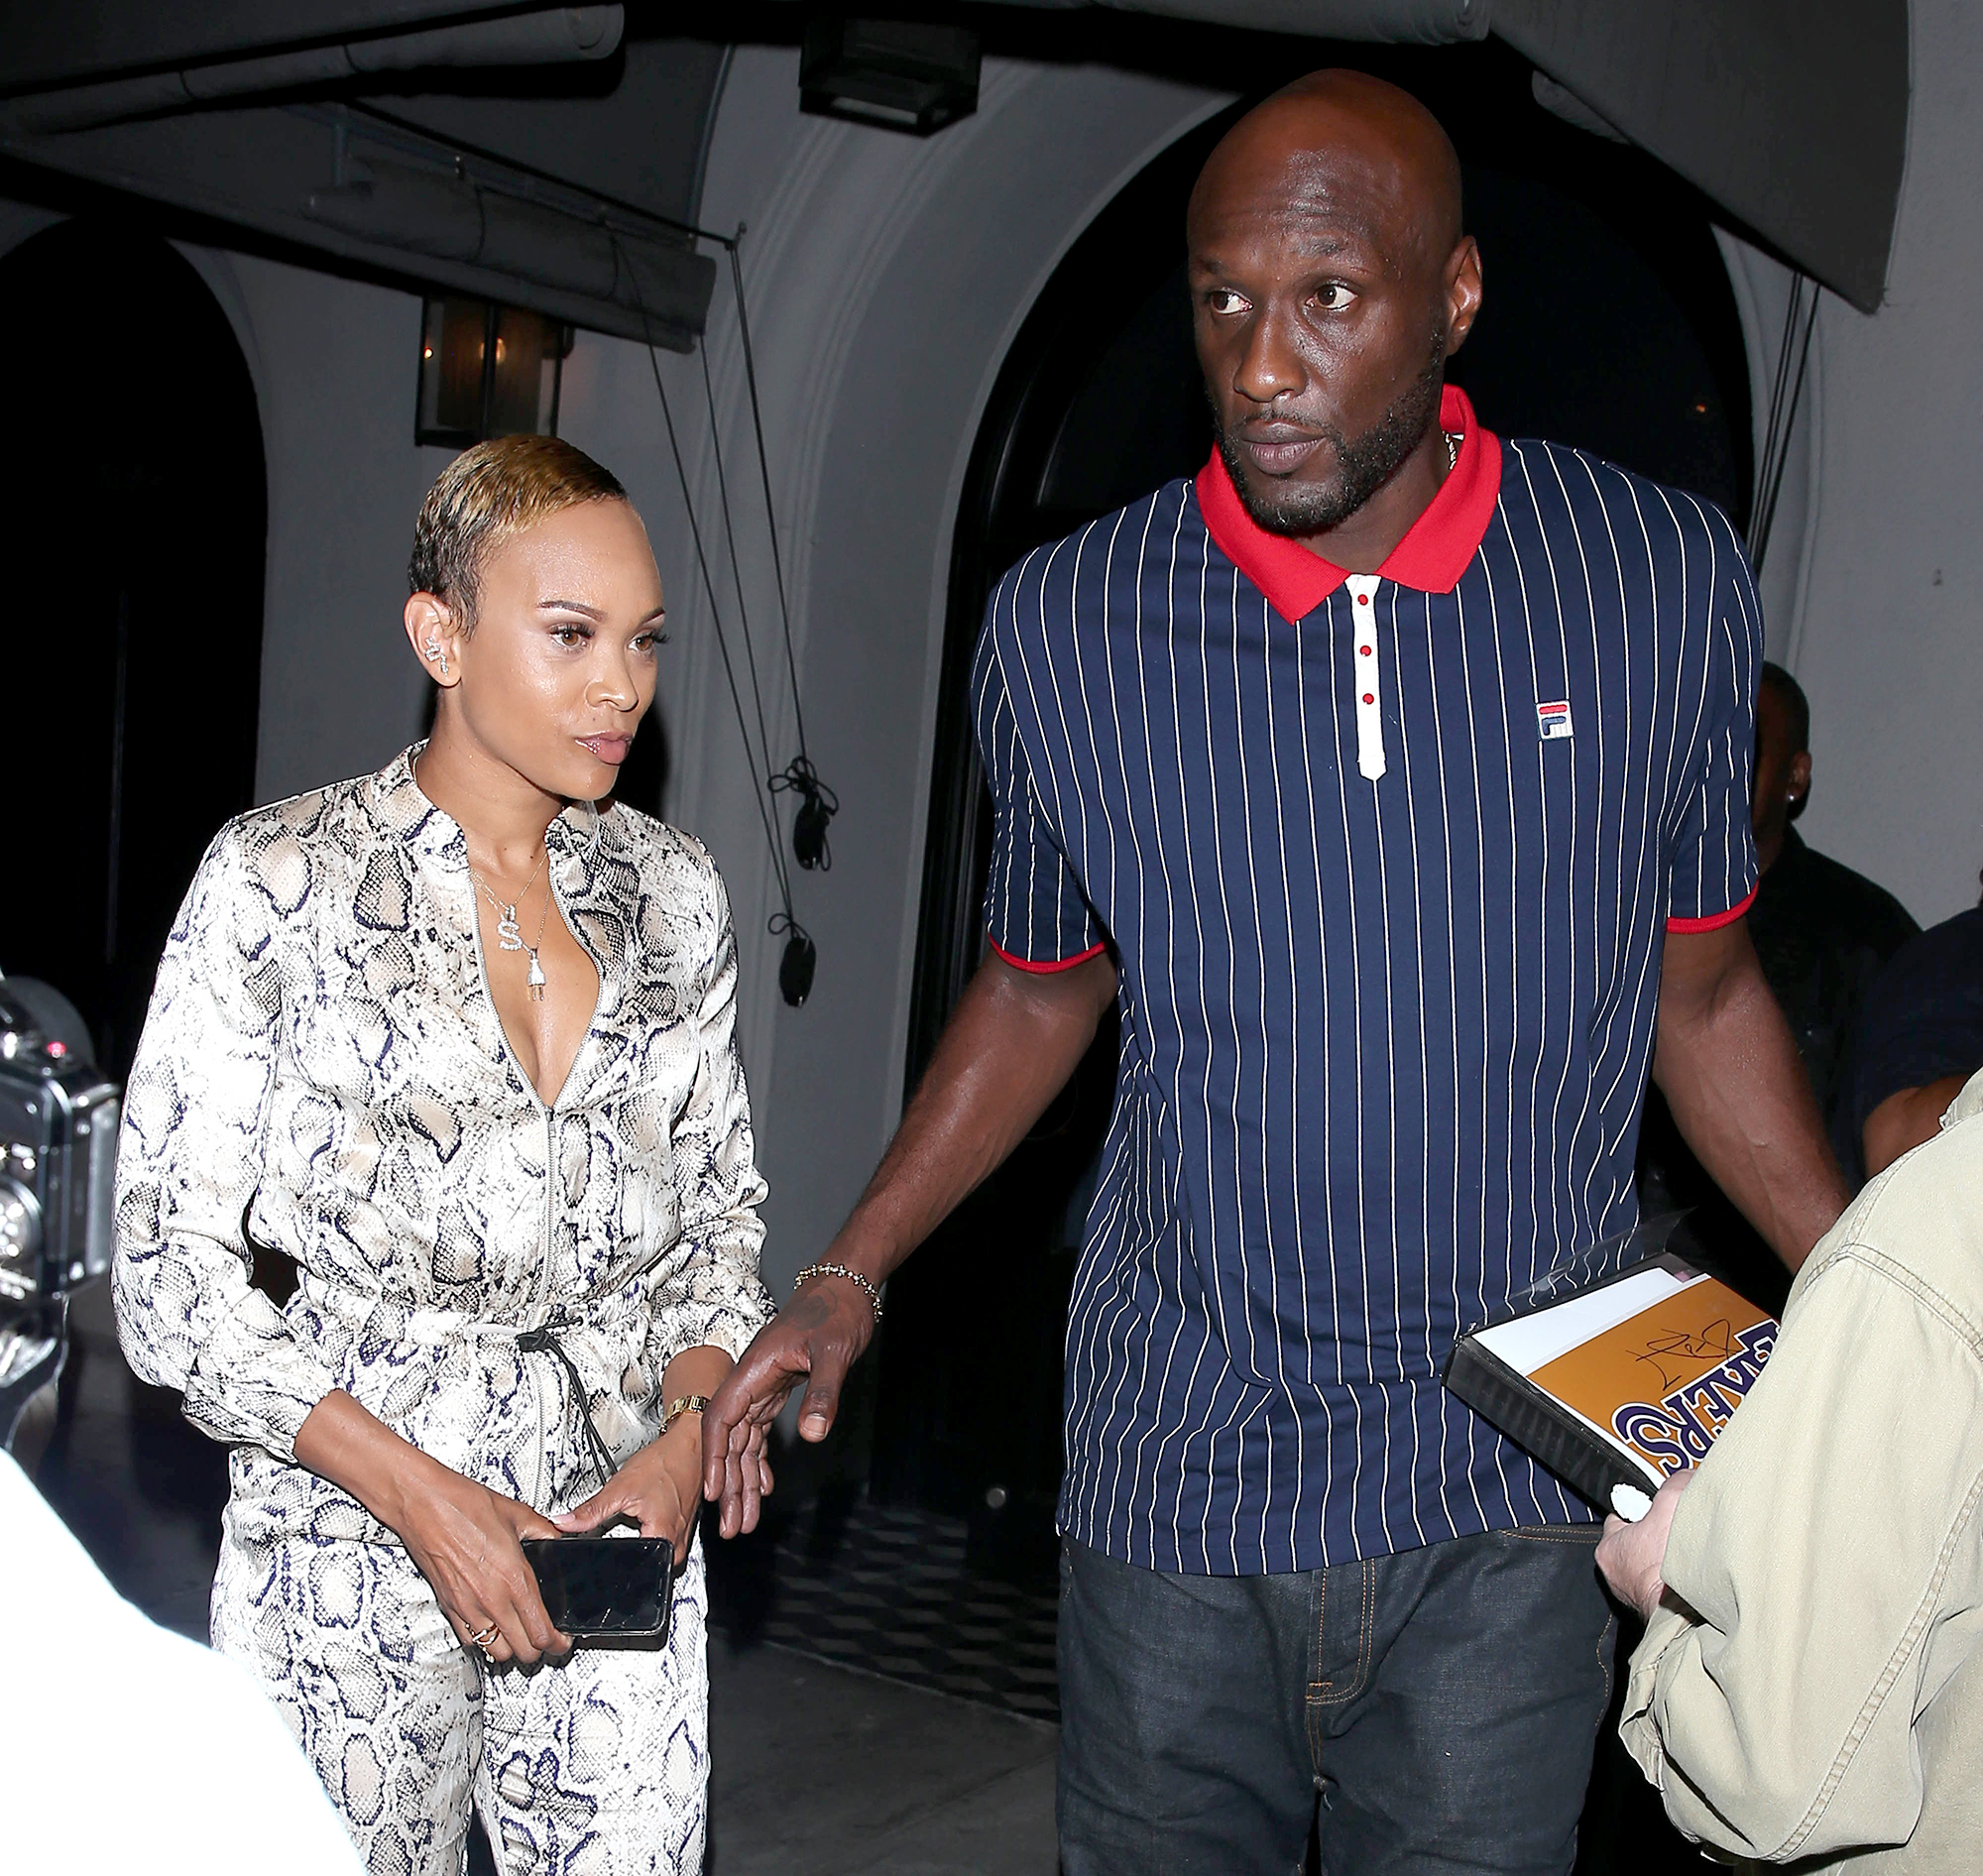 Lamar Odom Filming a Reality Show With New Girlfriend